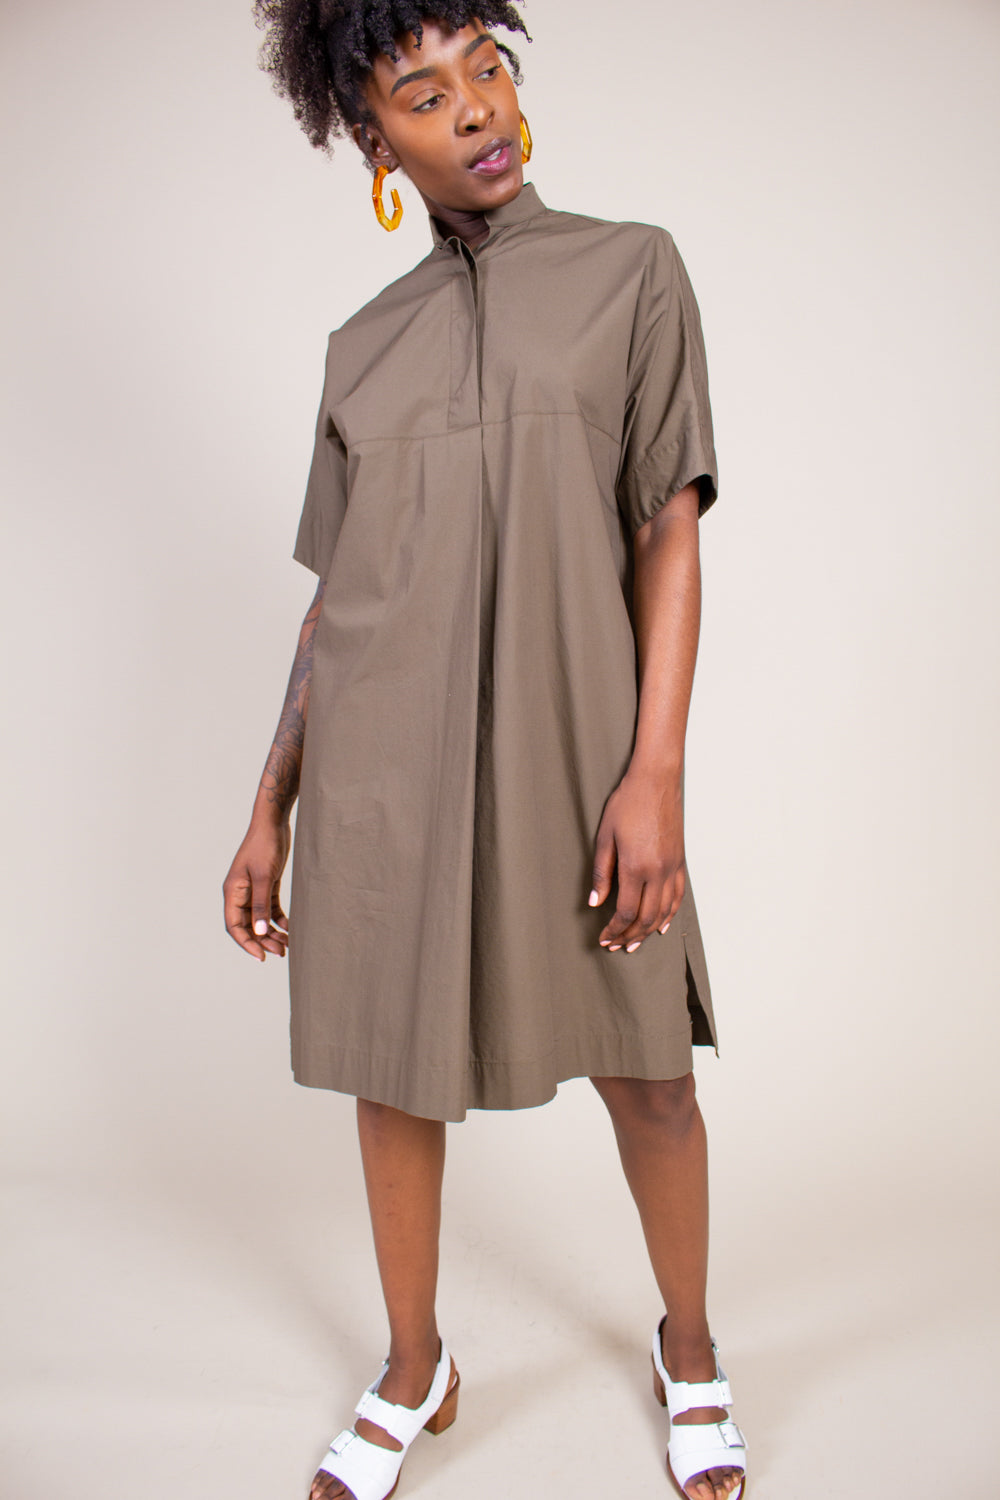 Banded Collar Shirt Dress in Military